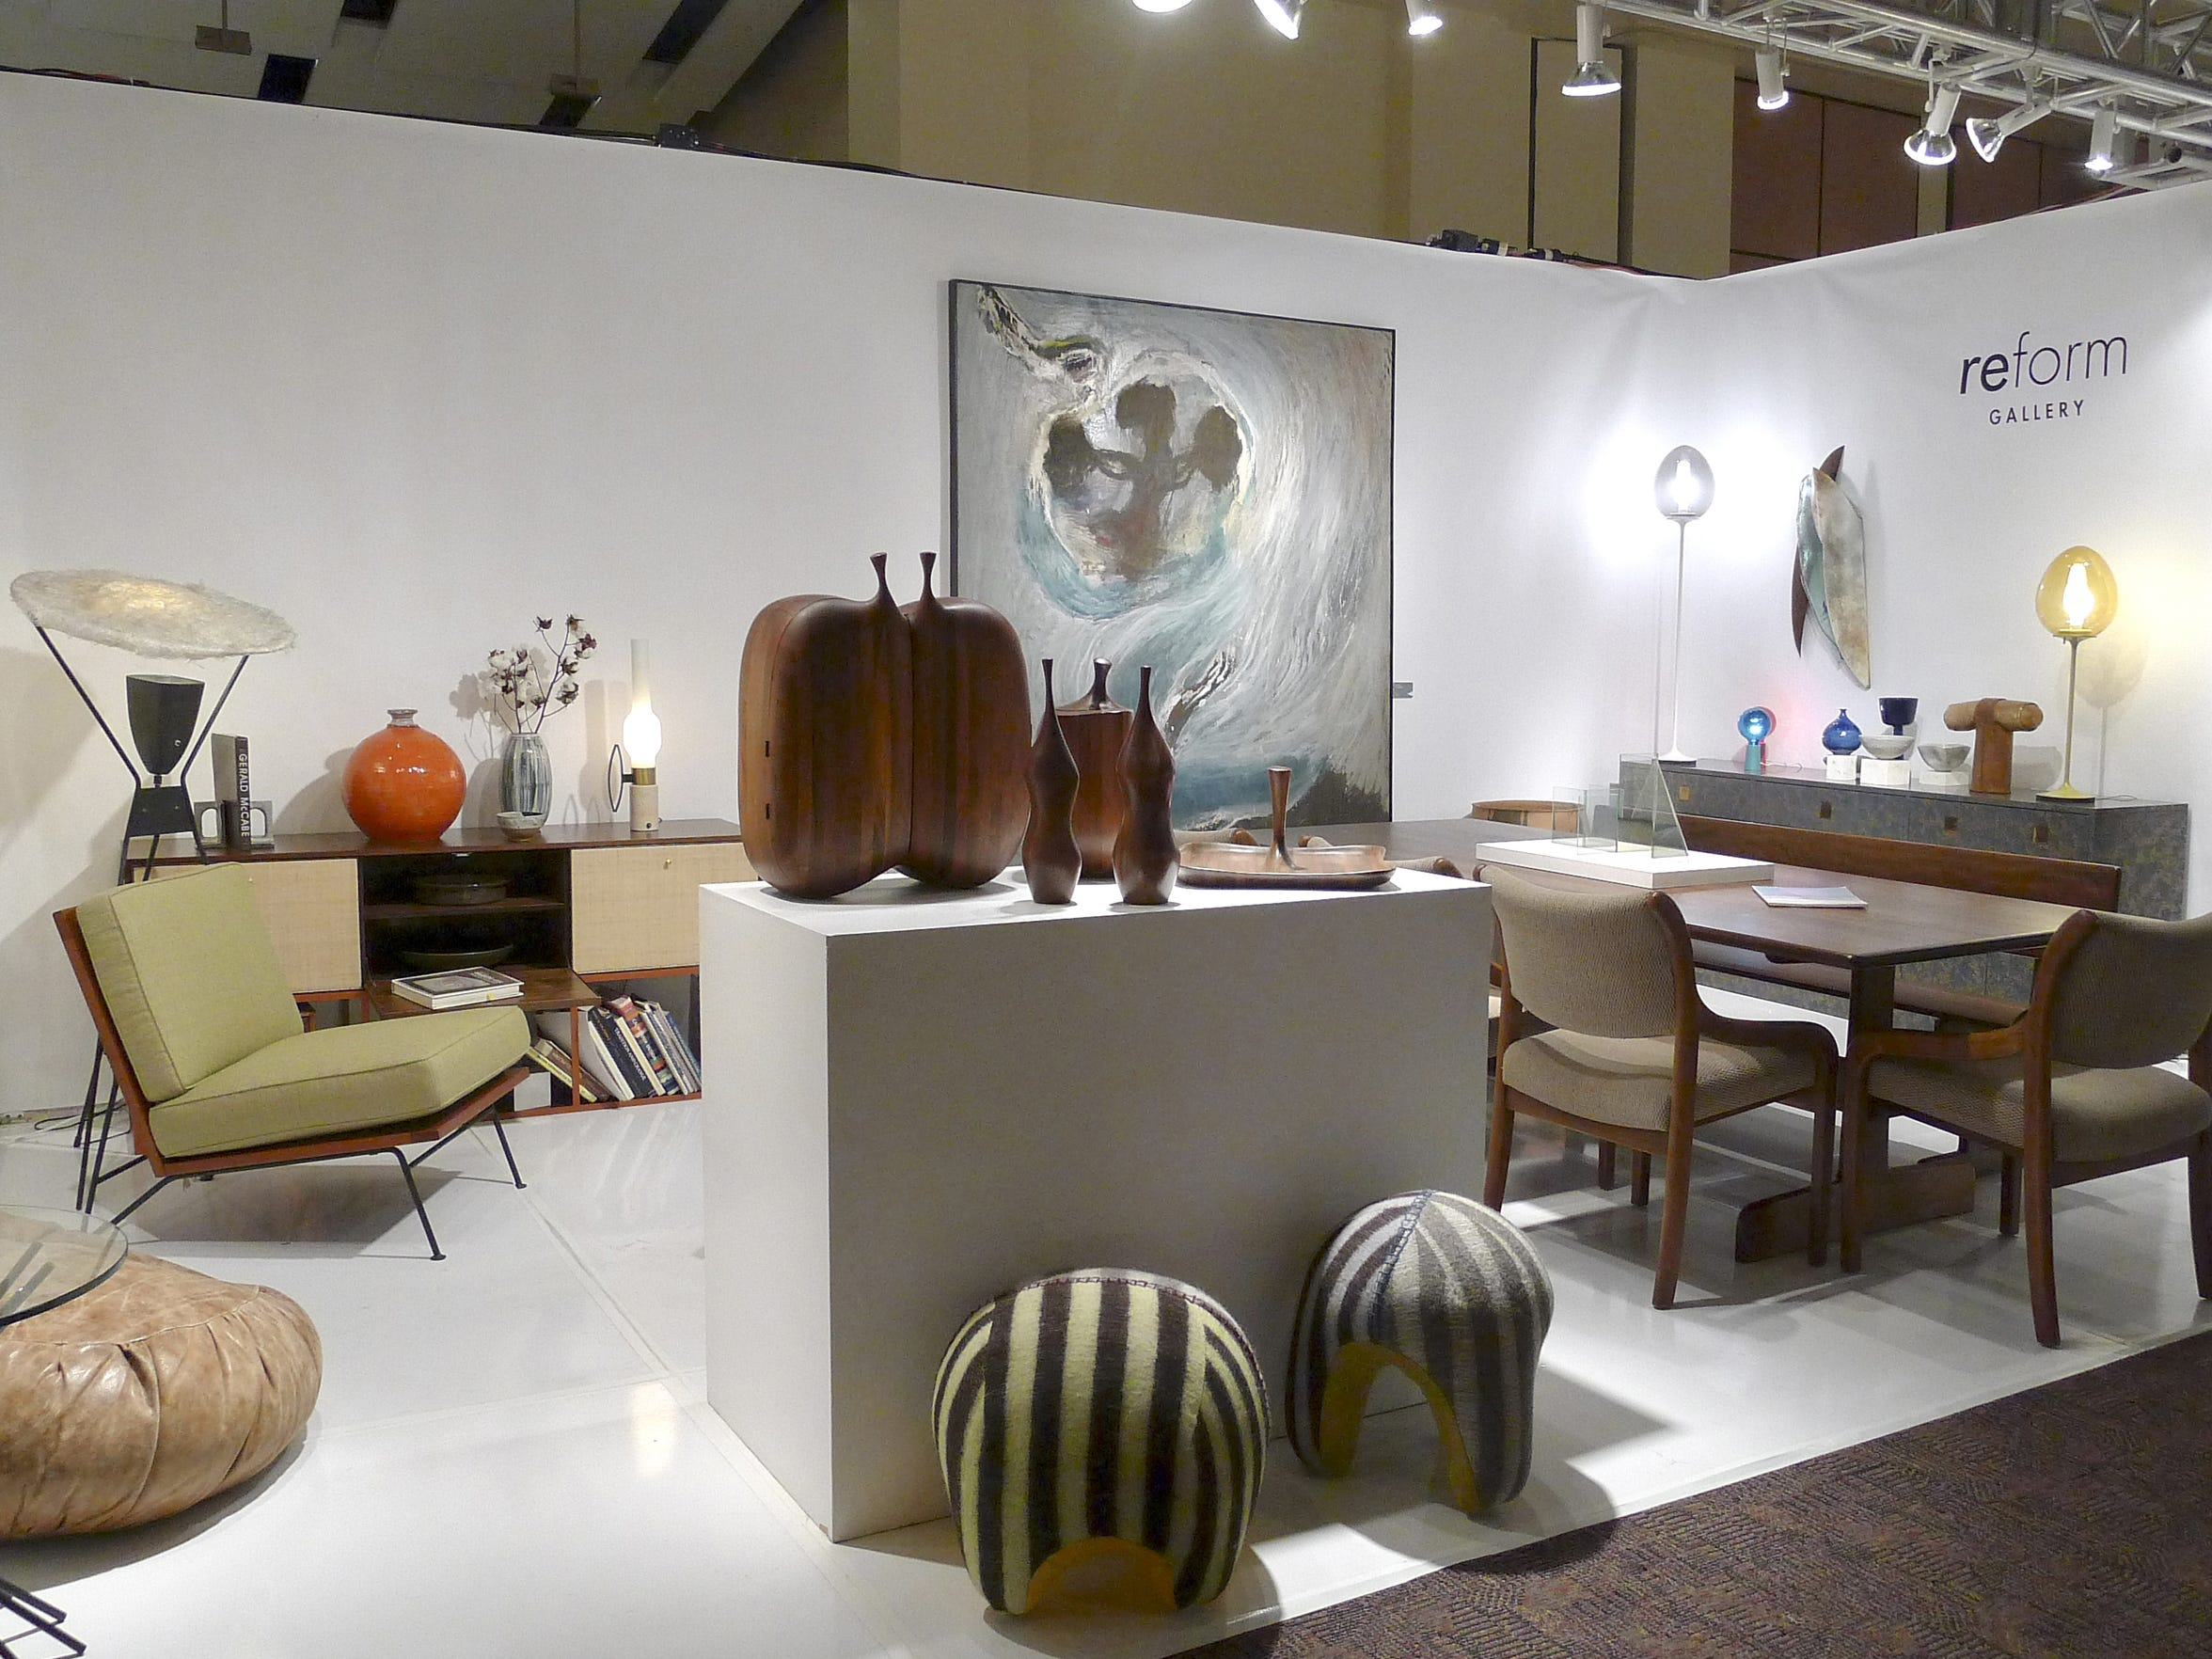 Exhibitor Reform Gallery of Los Angeles at the Modernism Show and Sale.